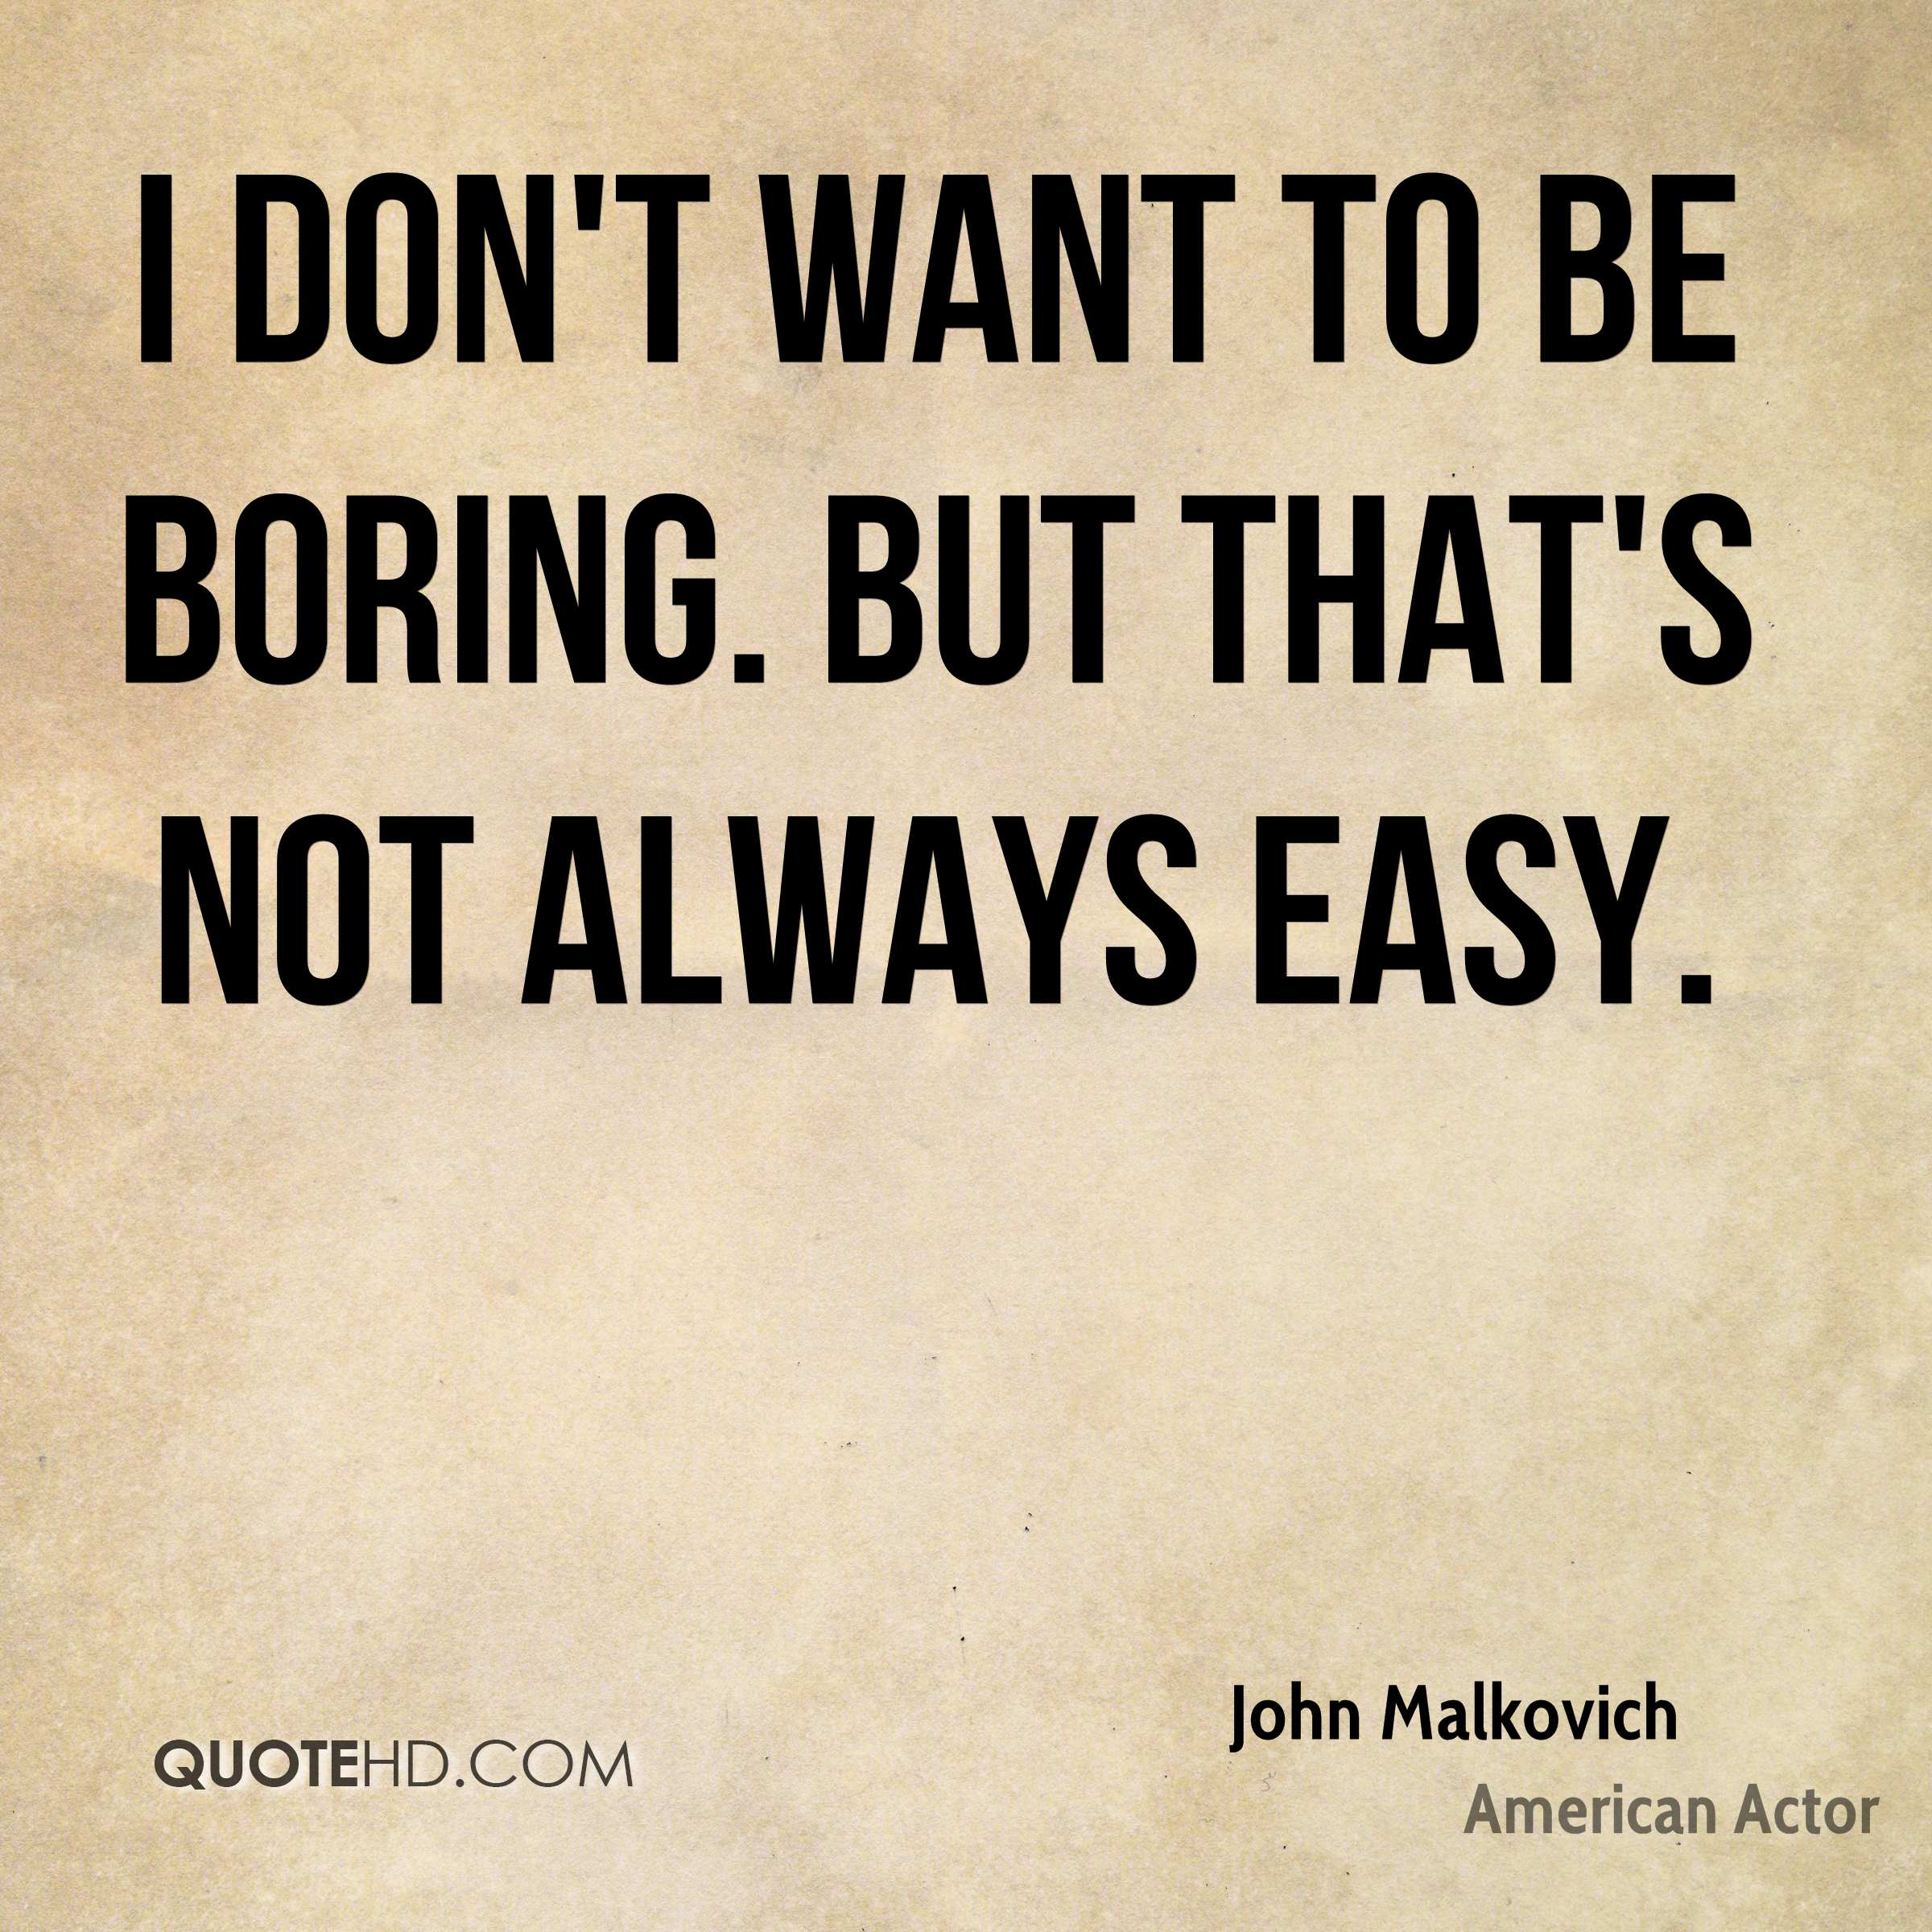 I don't want to be boring. But that's not always easy.